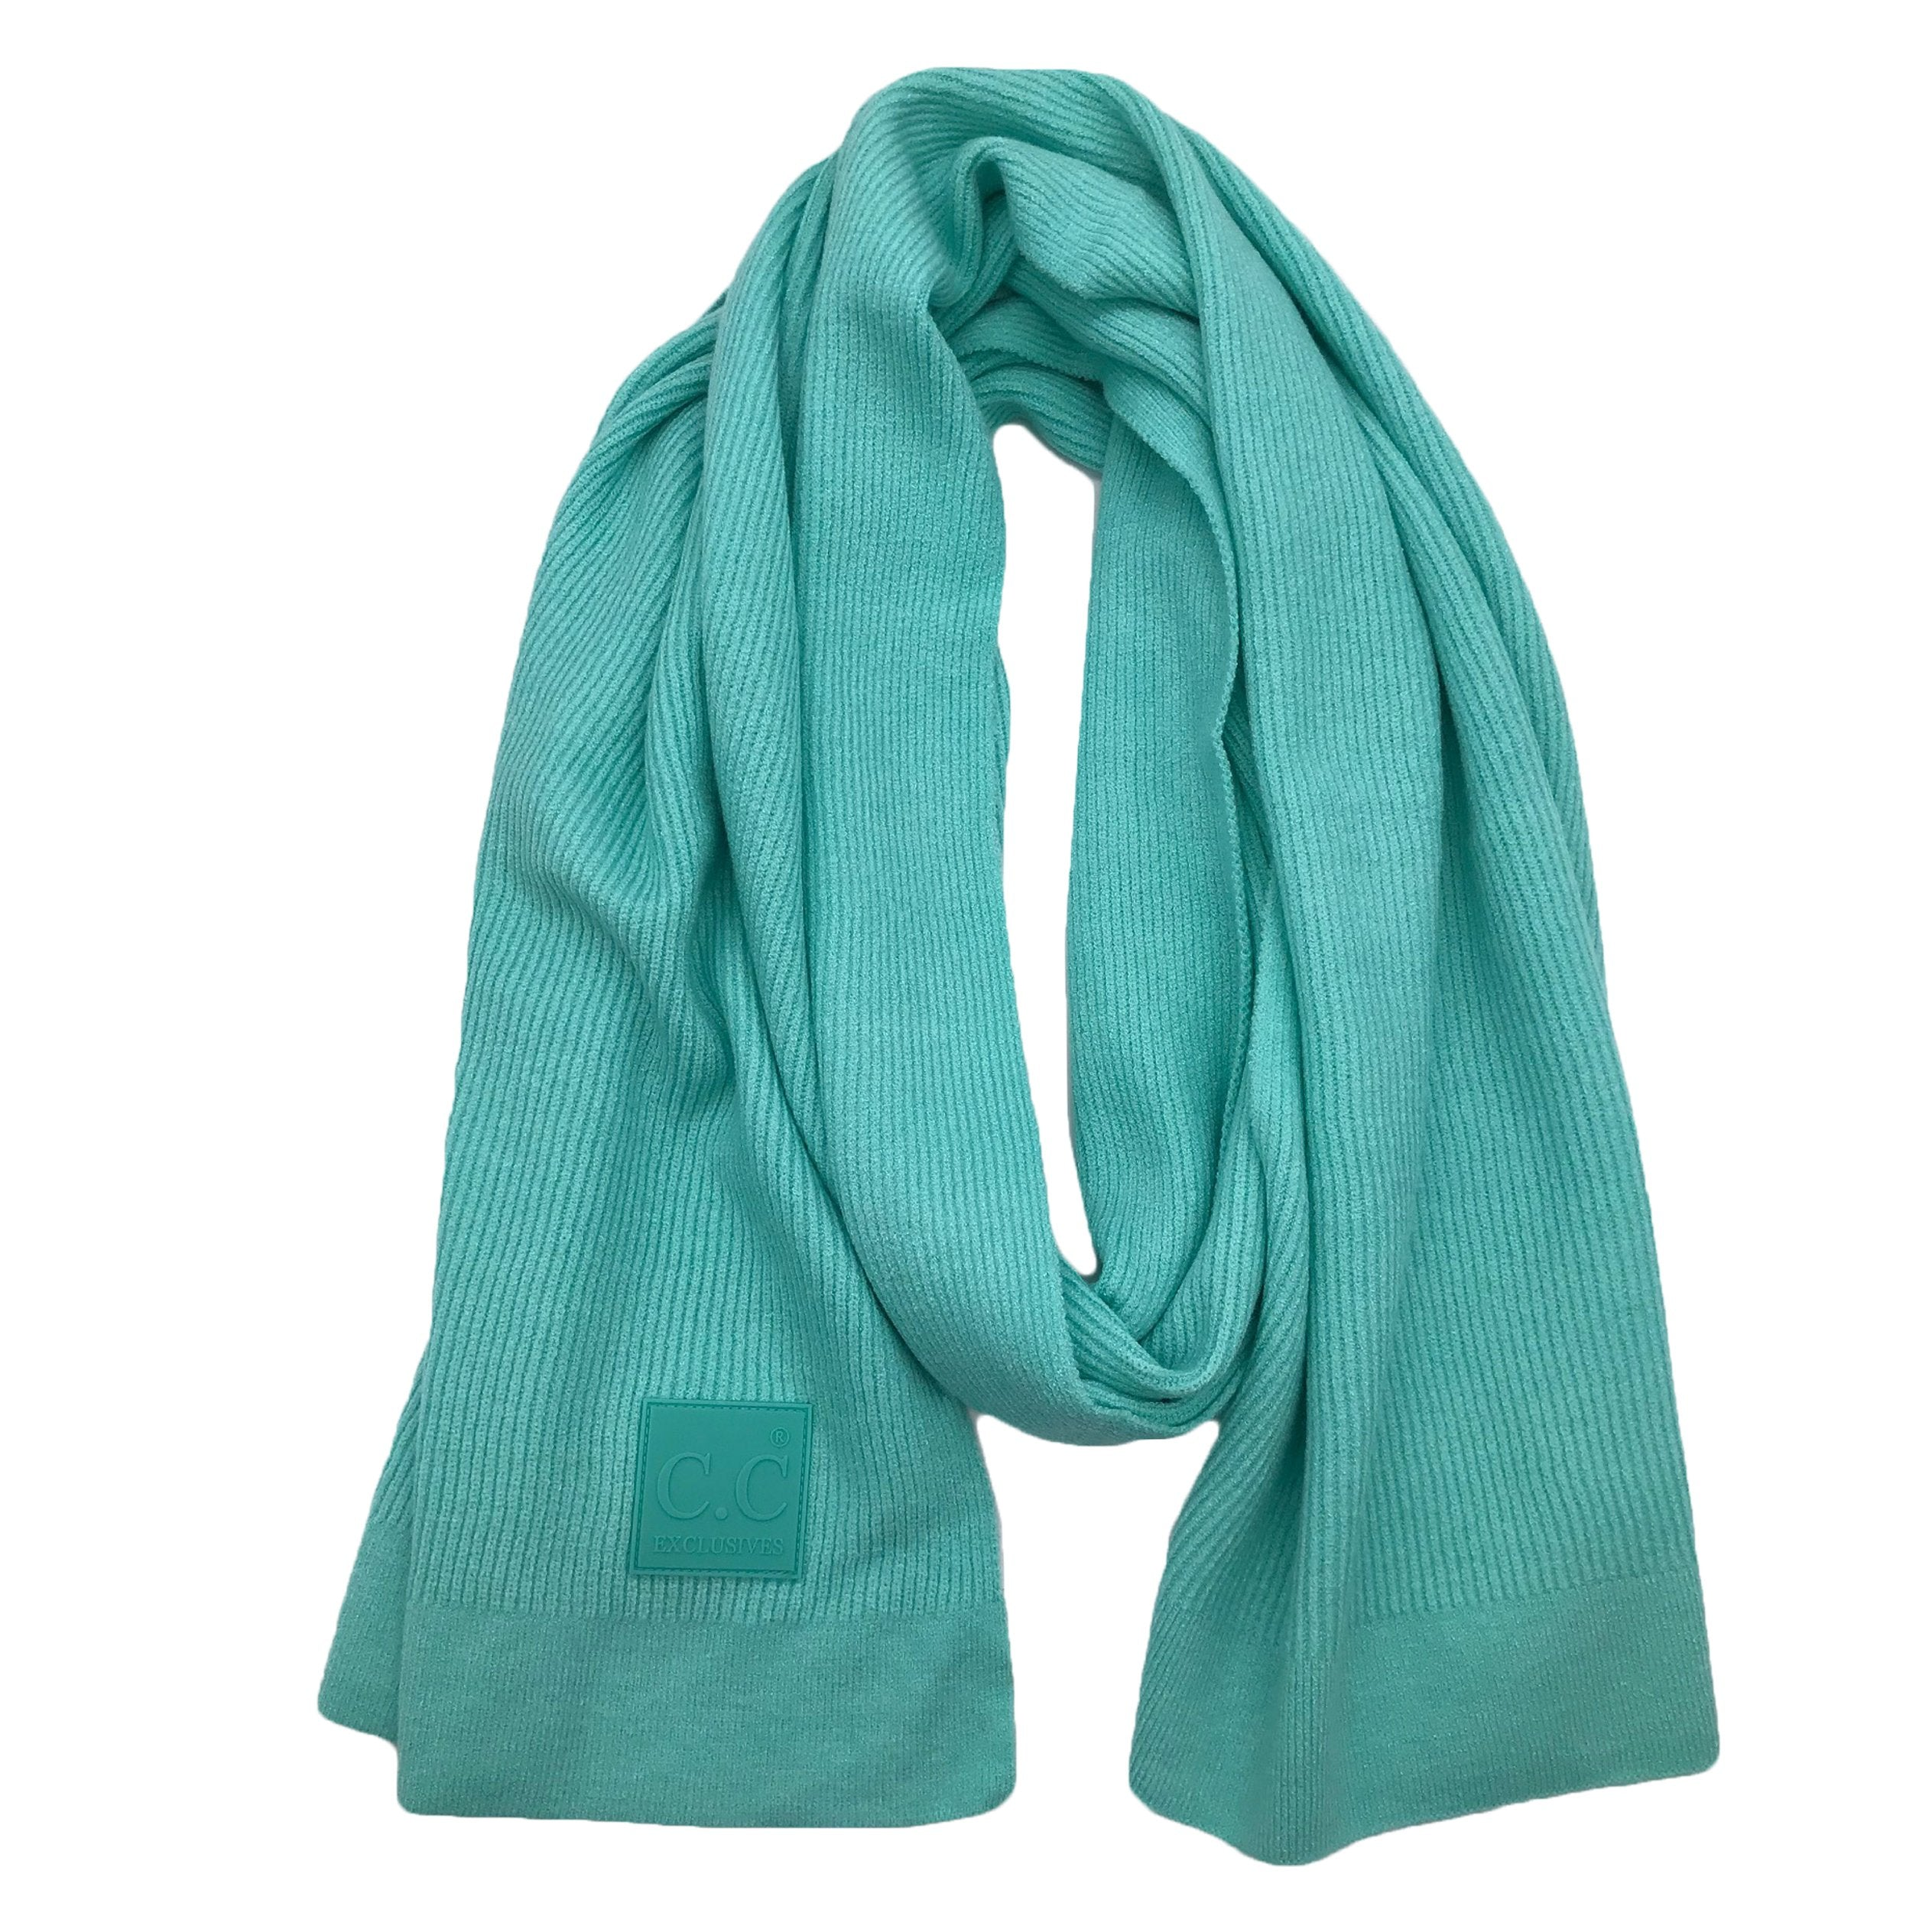 Scarf-7007 Rubber Patch Scarf Mint